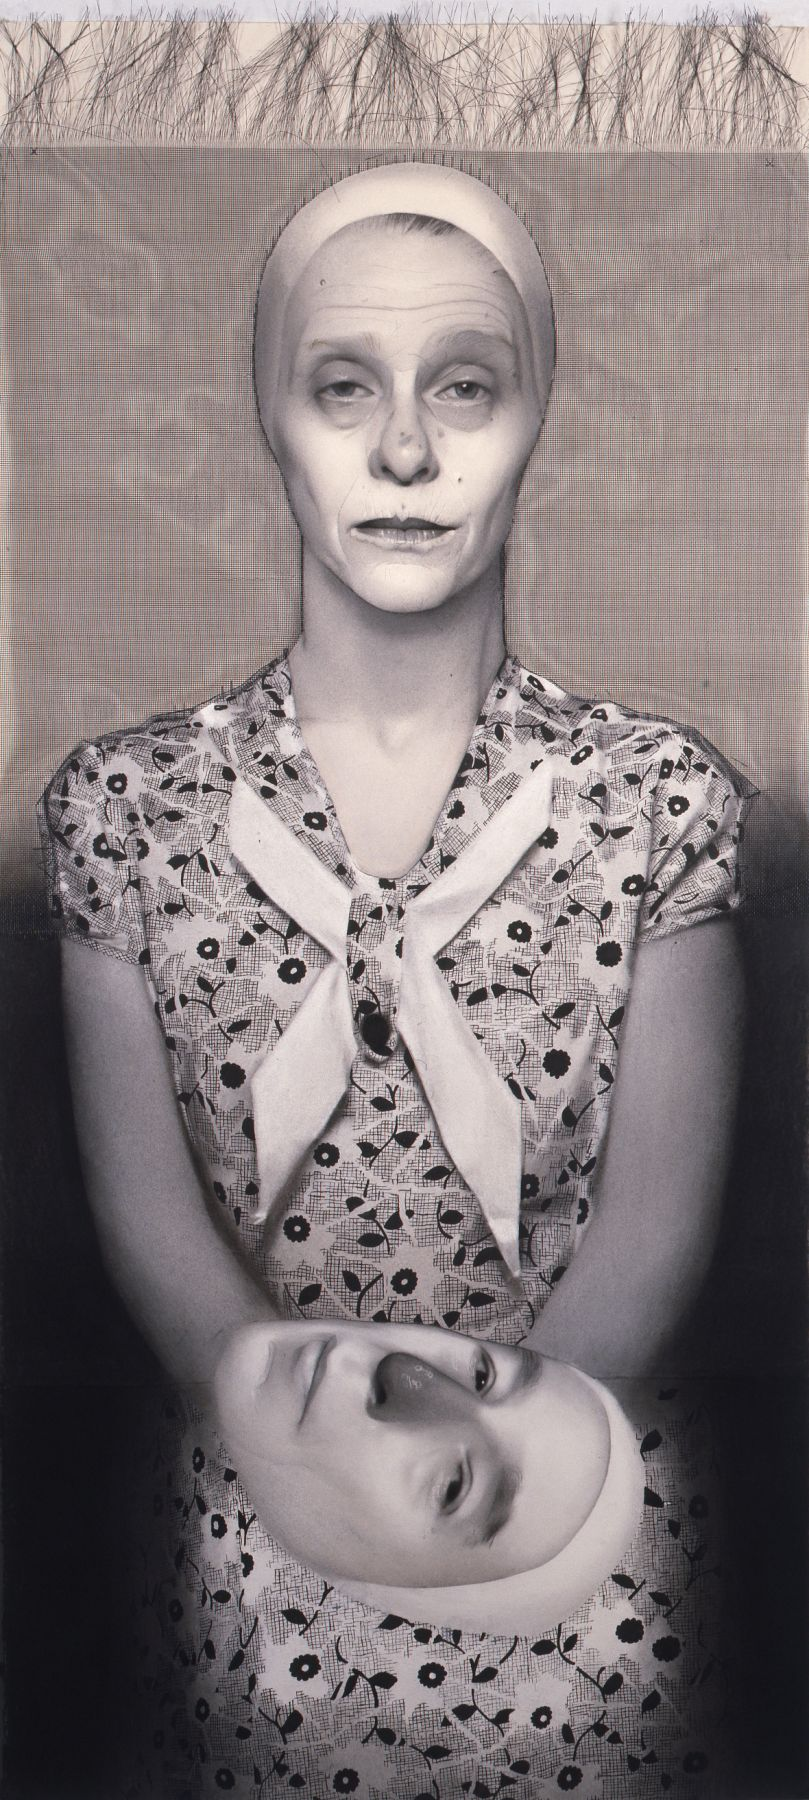 Susan Hauptman, Self Portrait (with wire mesh), 2007, charcoal, ink and wire mesh on paper, 58 x 26 inches